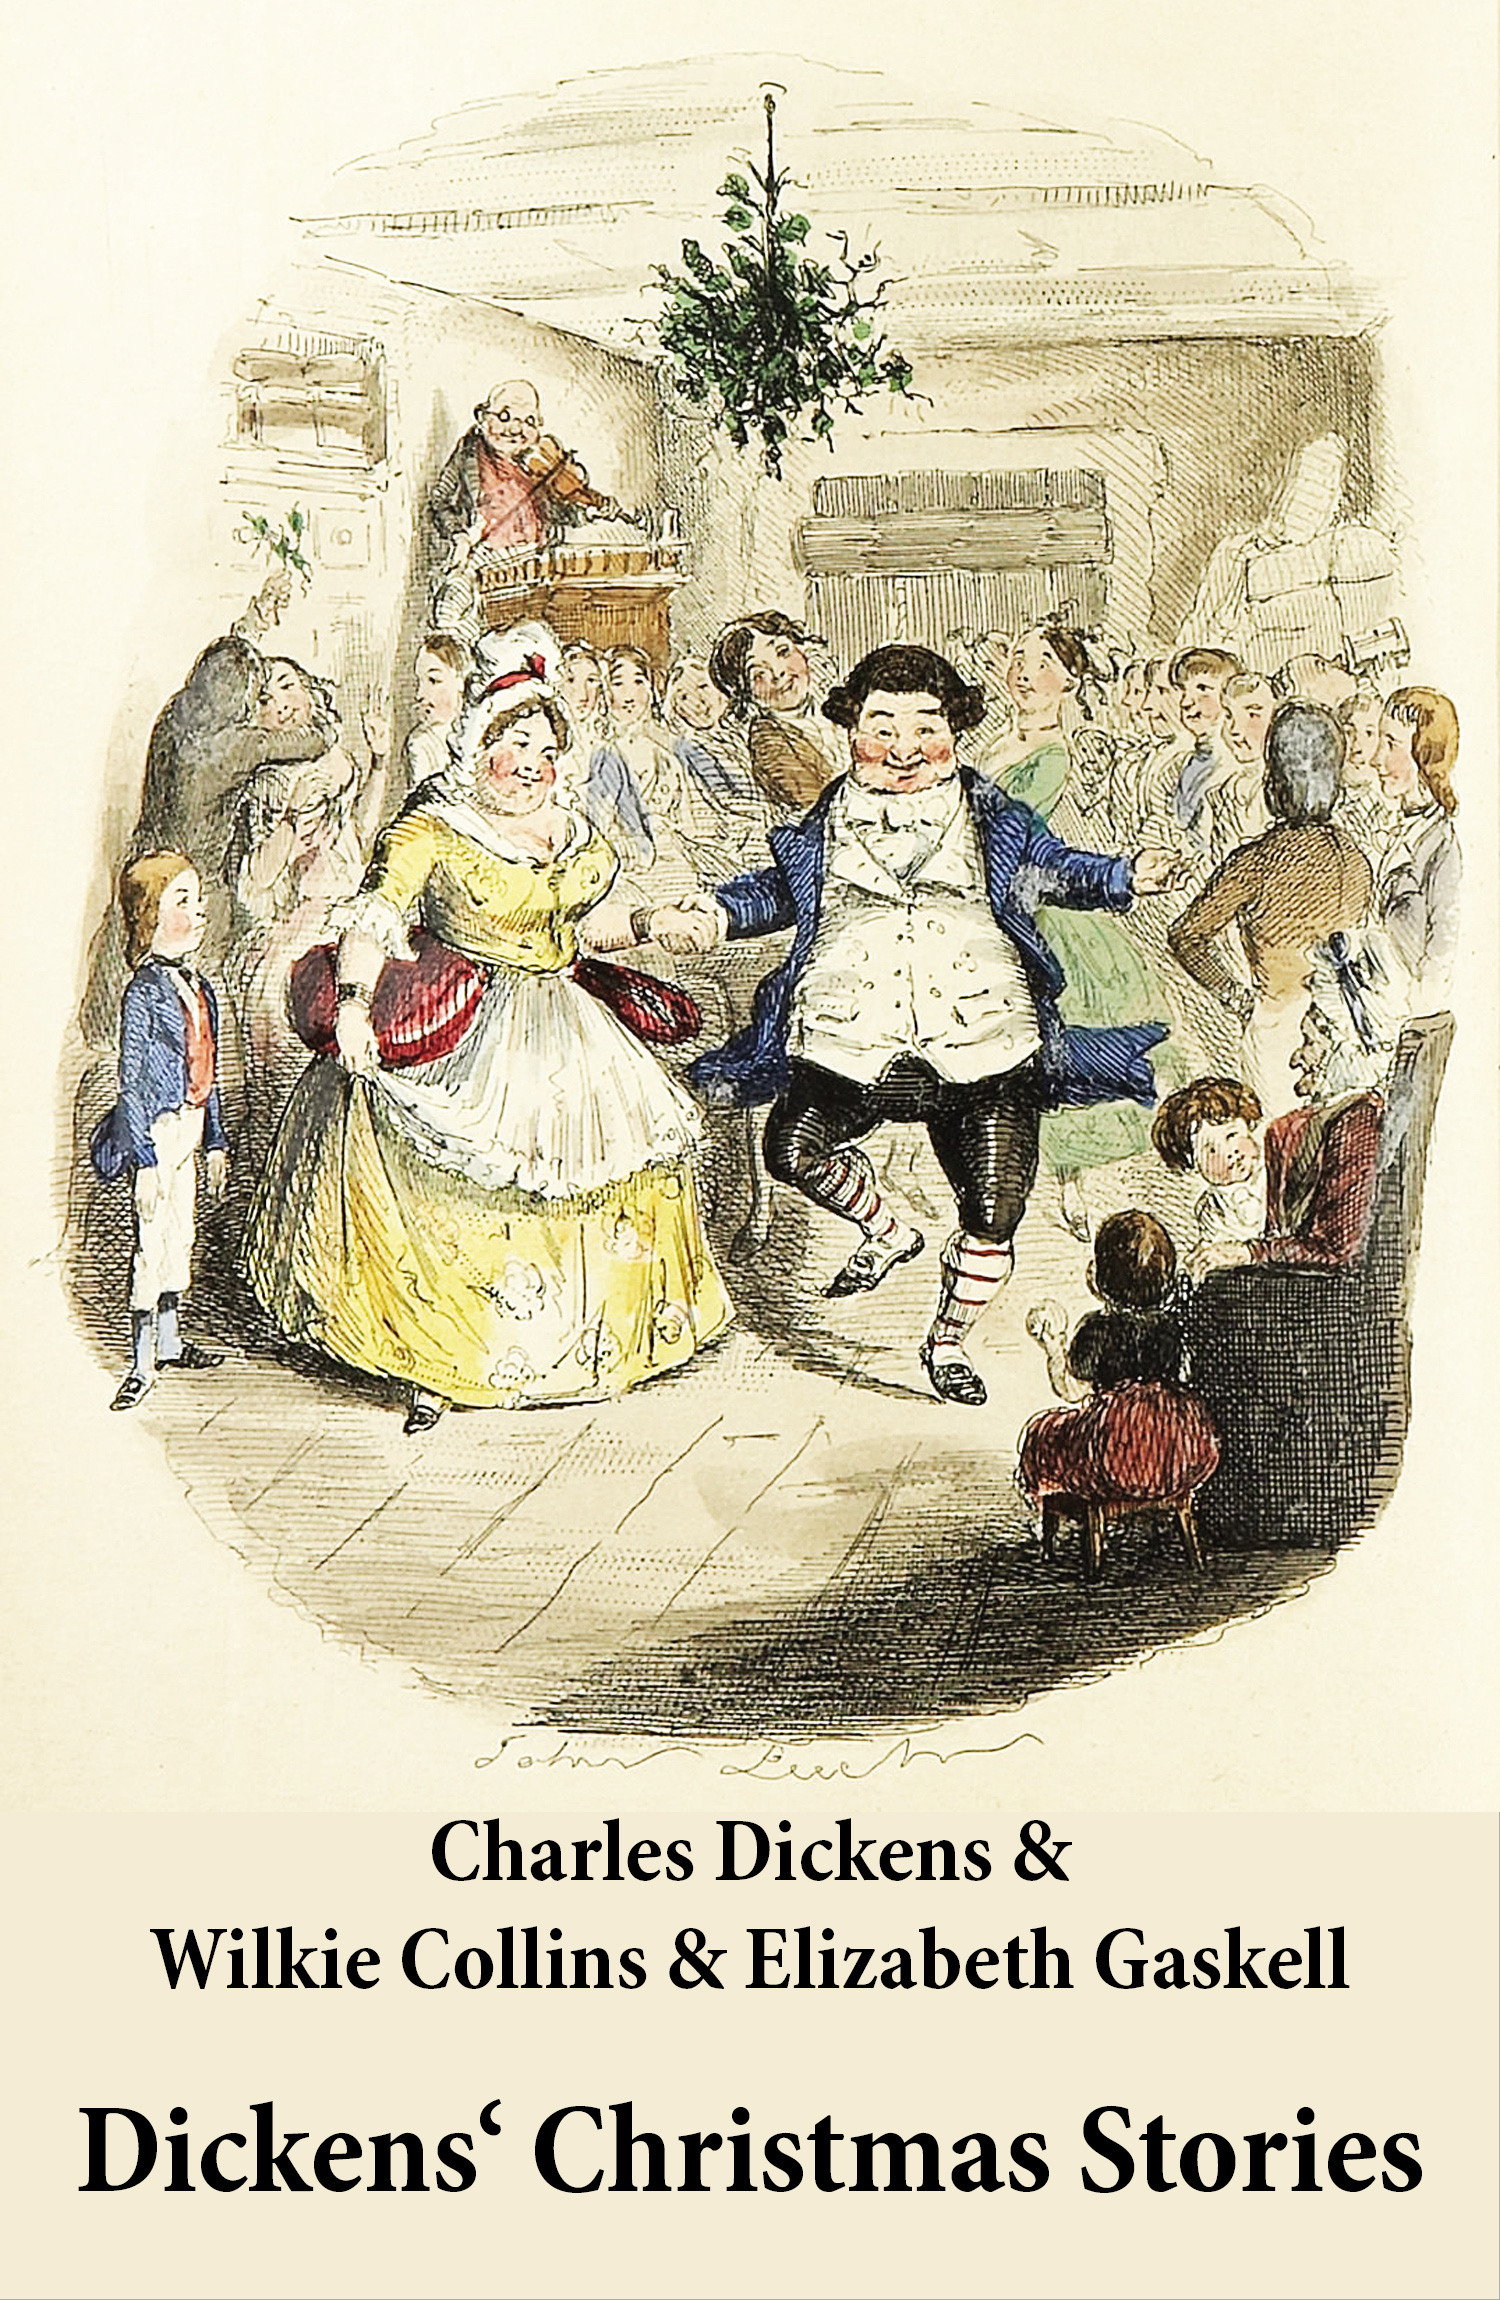 Dickens' Christmas stories ; 20 original stories published between 1850 and 1867